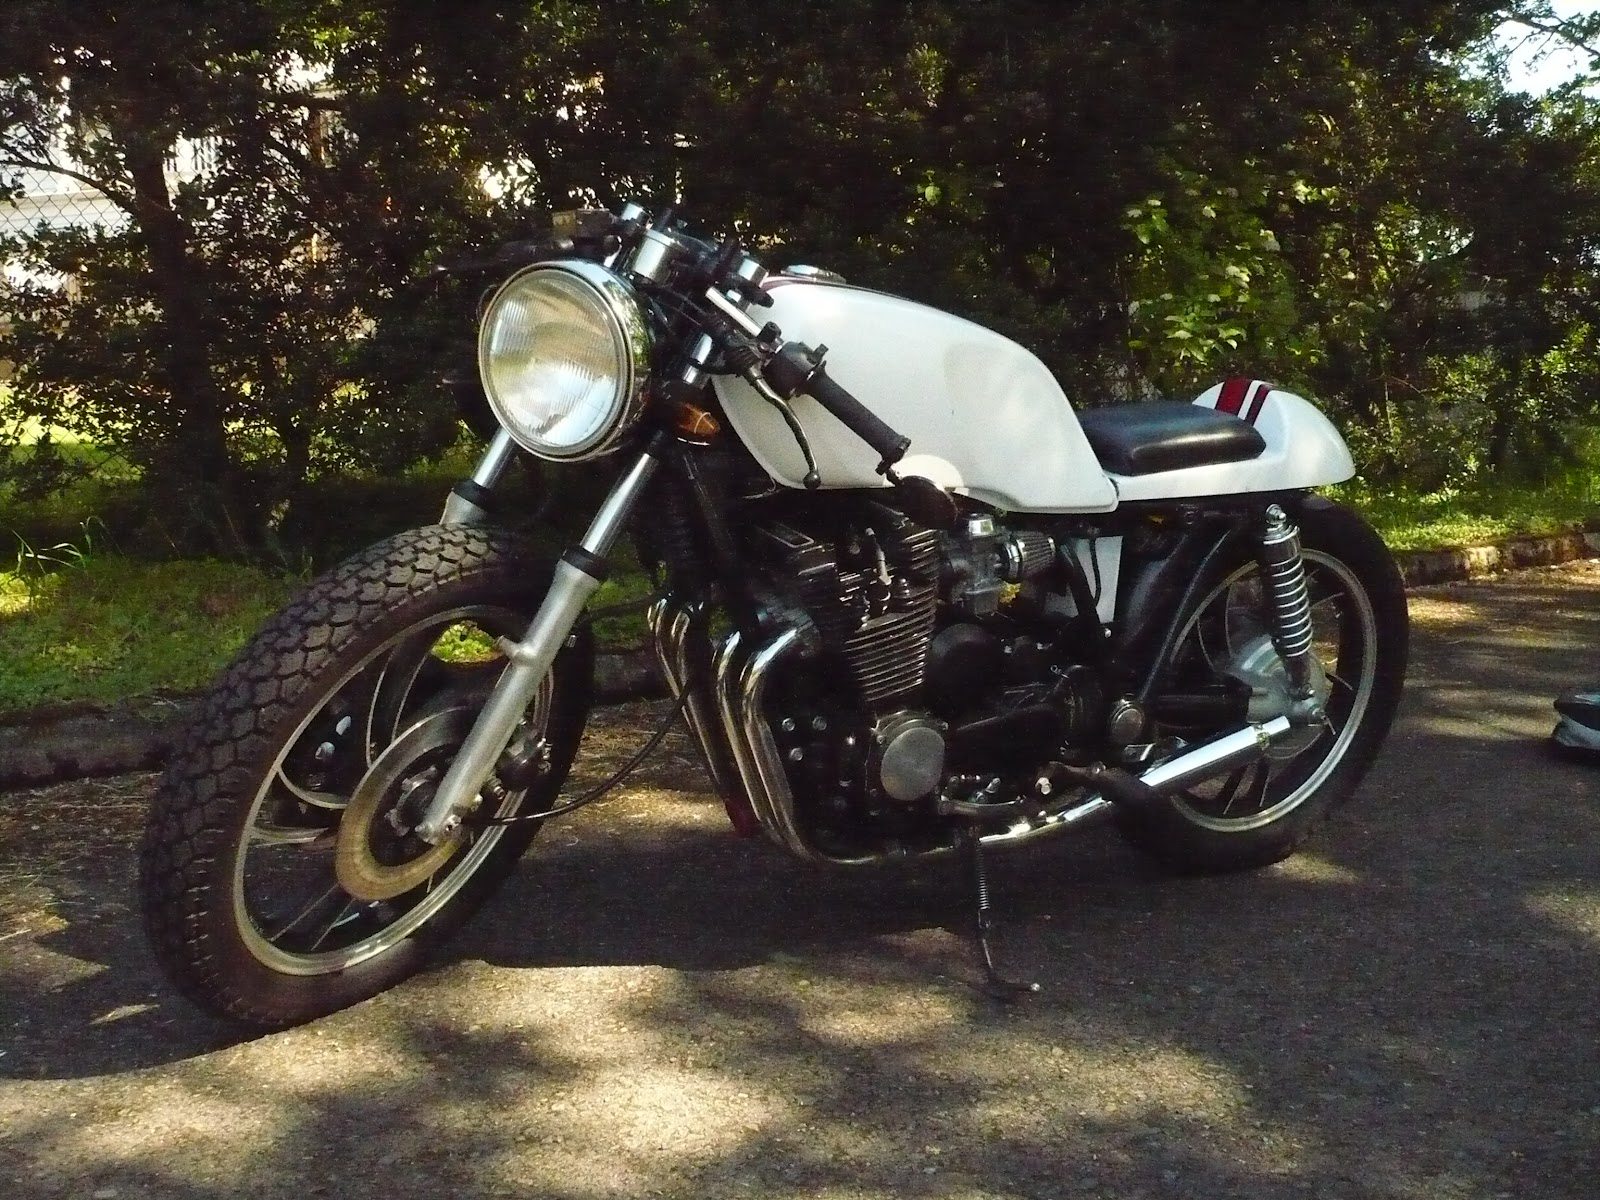 XJ 650 Cafe Racer parts list    lets go XJ650 parts shopping